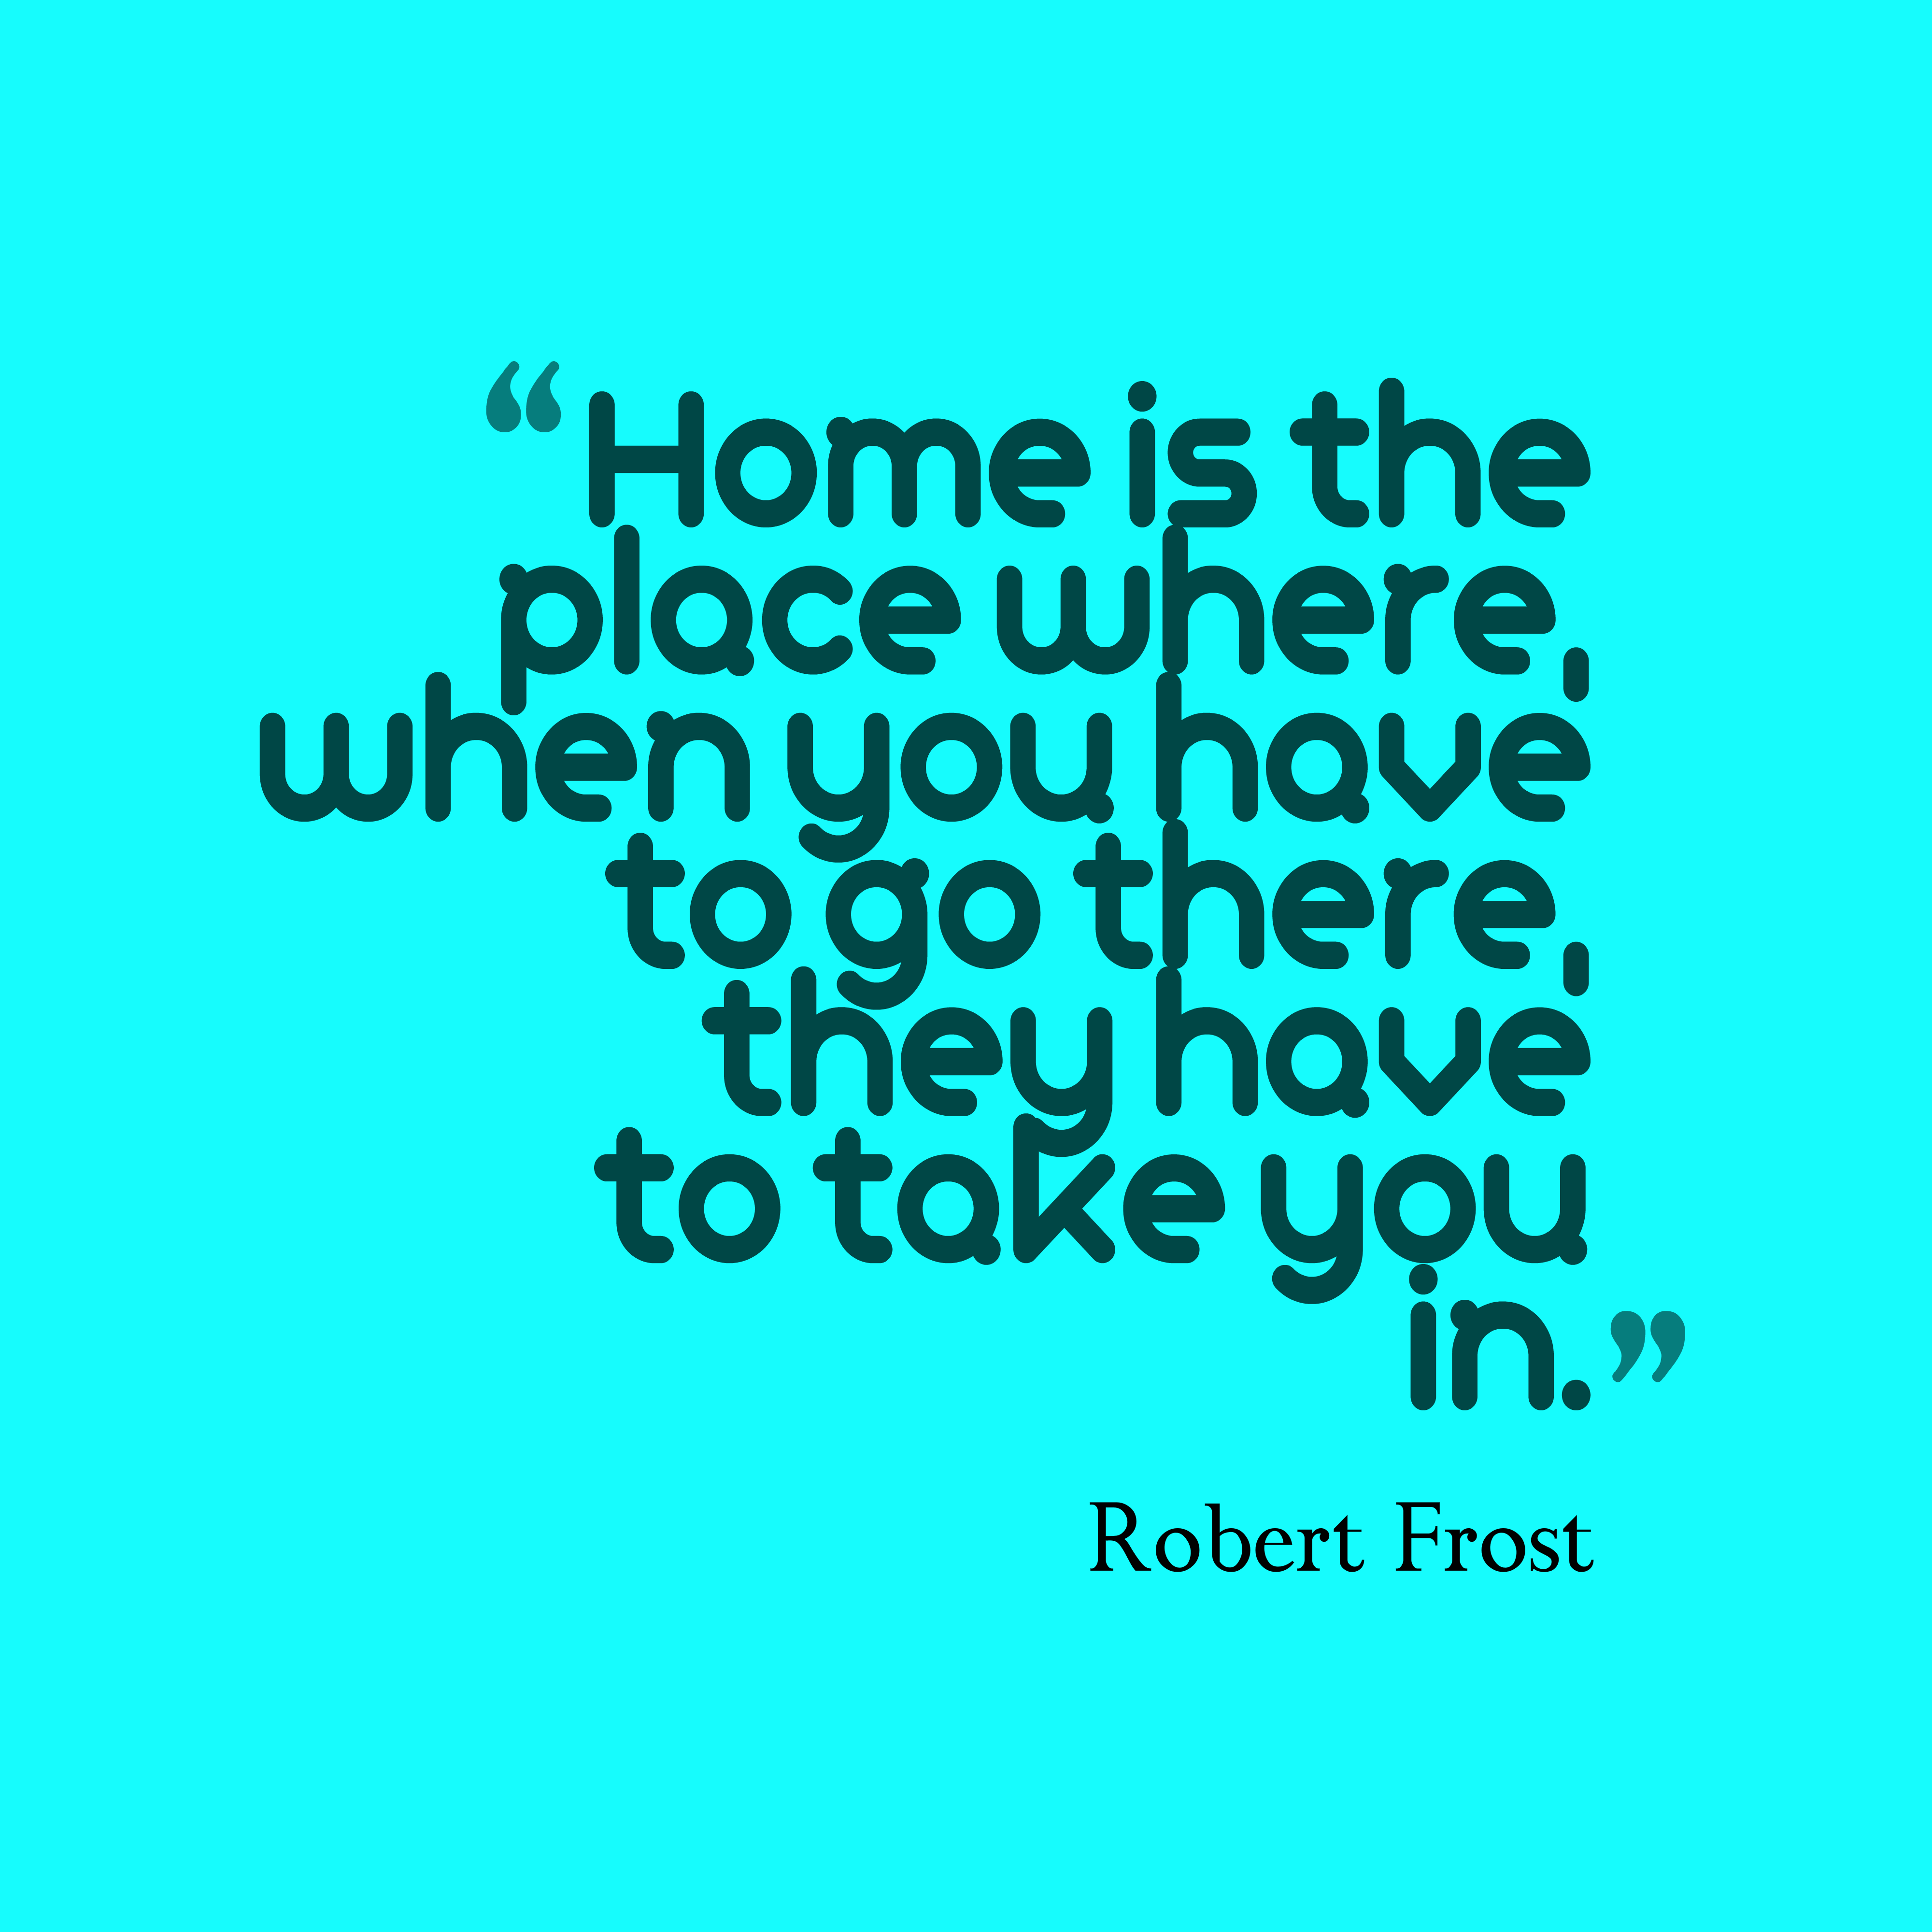 Quotes On Home 157 Best Home Quotes Images